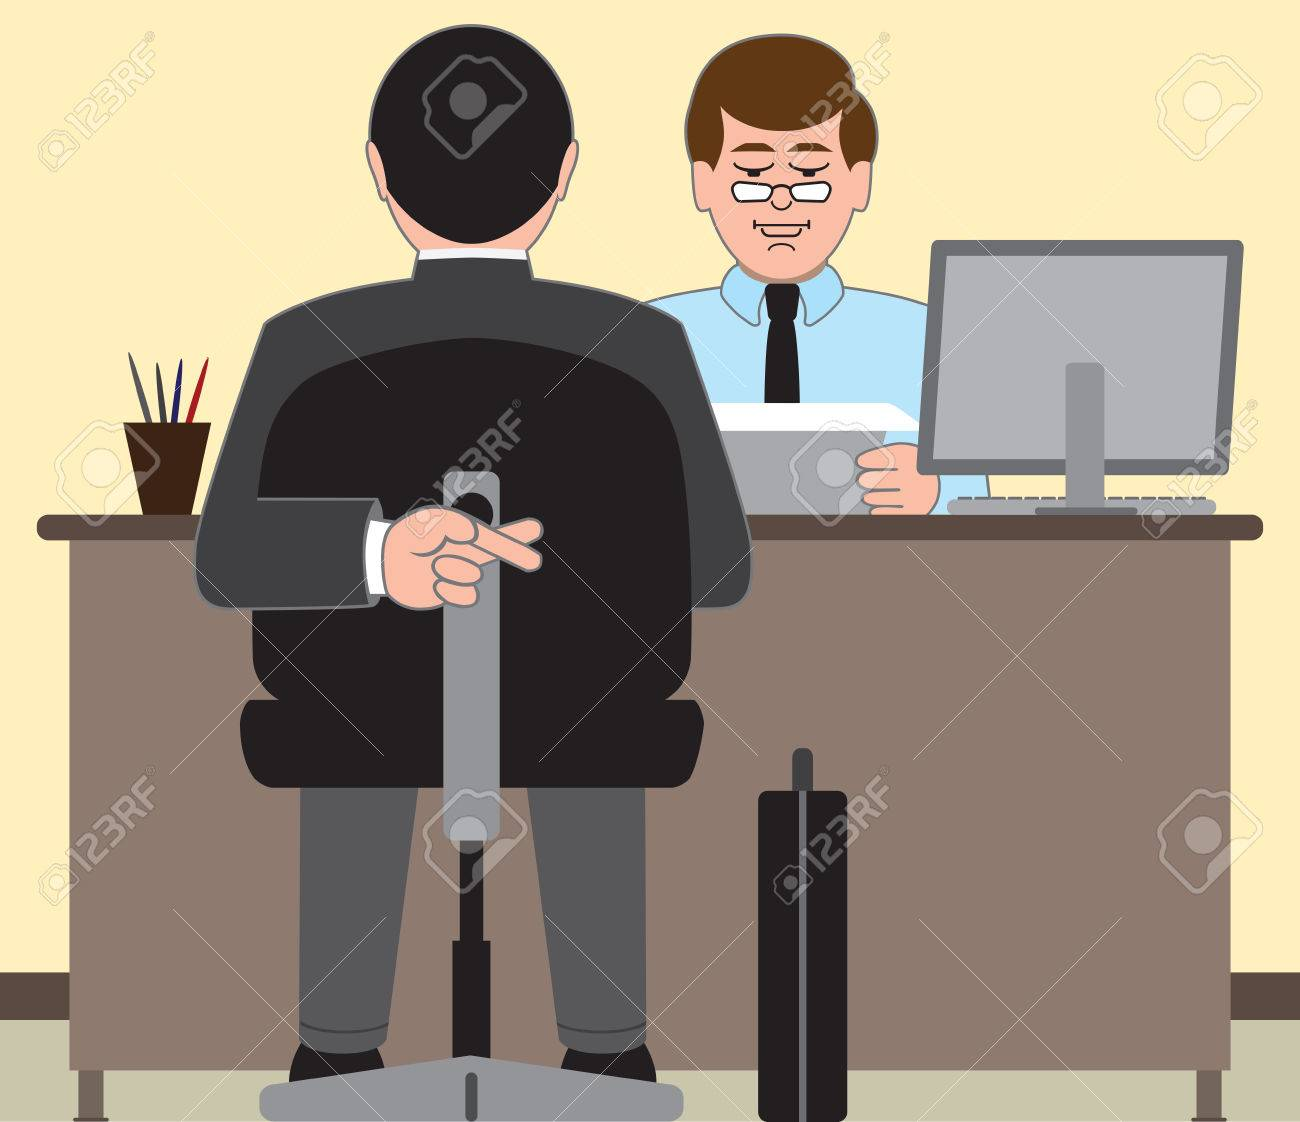 job applicant desperate to do well on his interview royalty job applicant desperate to do well on his interview stock vector 36907313